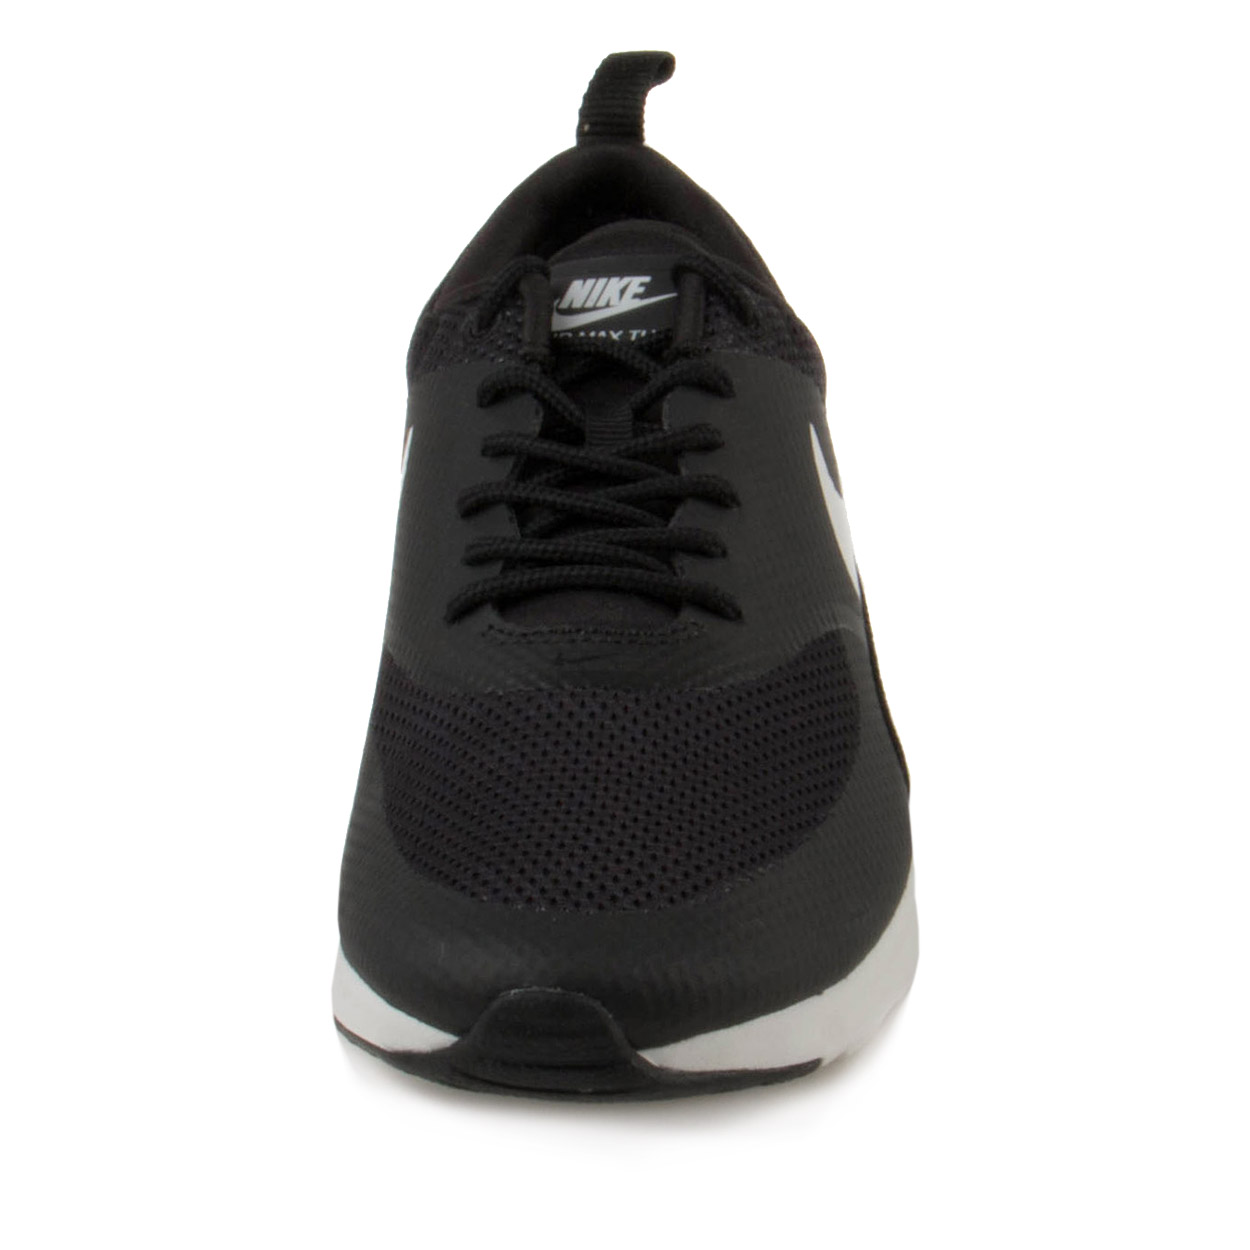 Nike Women's Air Max Thea Black / Summit White Ankle-High Running Shoe - 8.5M